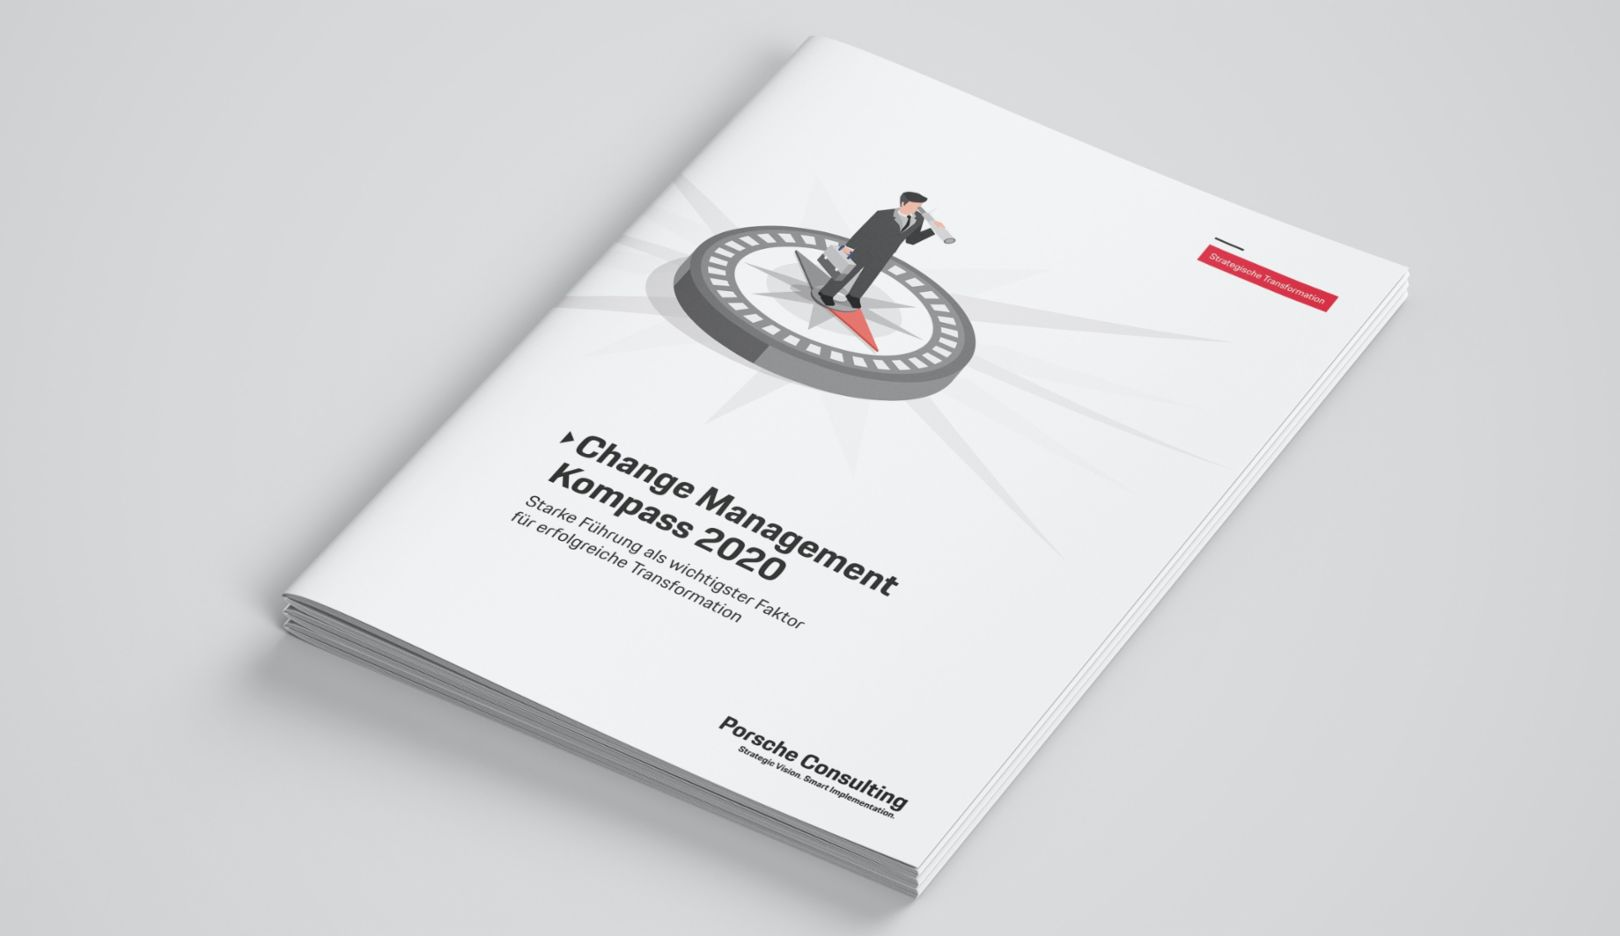 Change Management Kompass 2020, Studie, Porsche Consulting GmbH